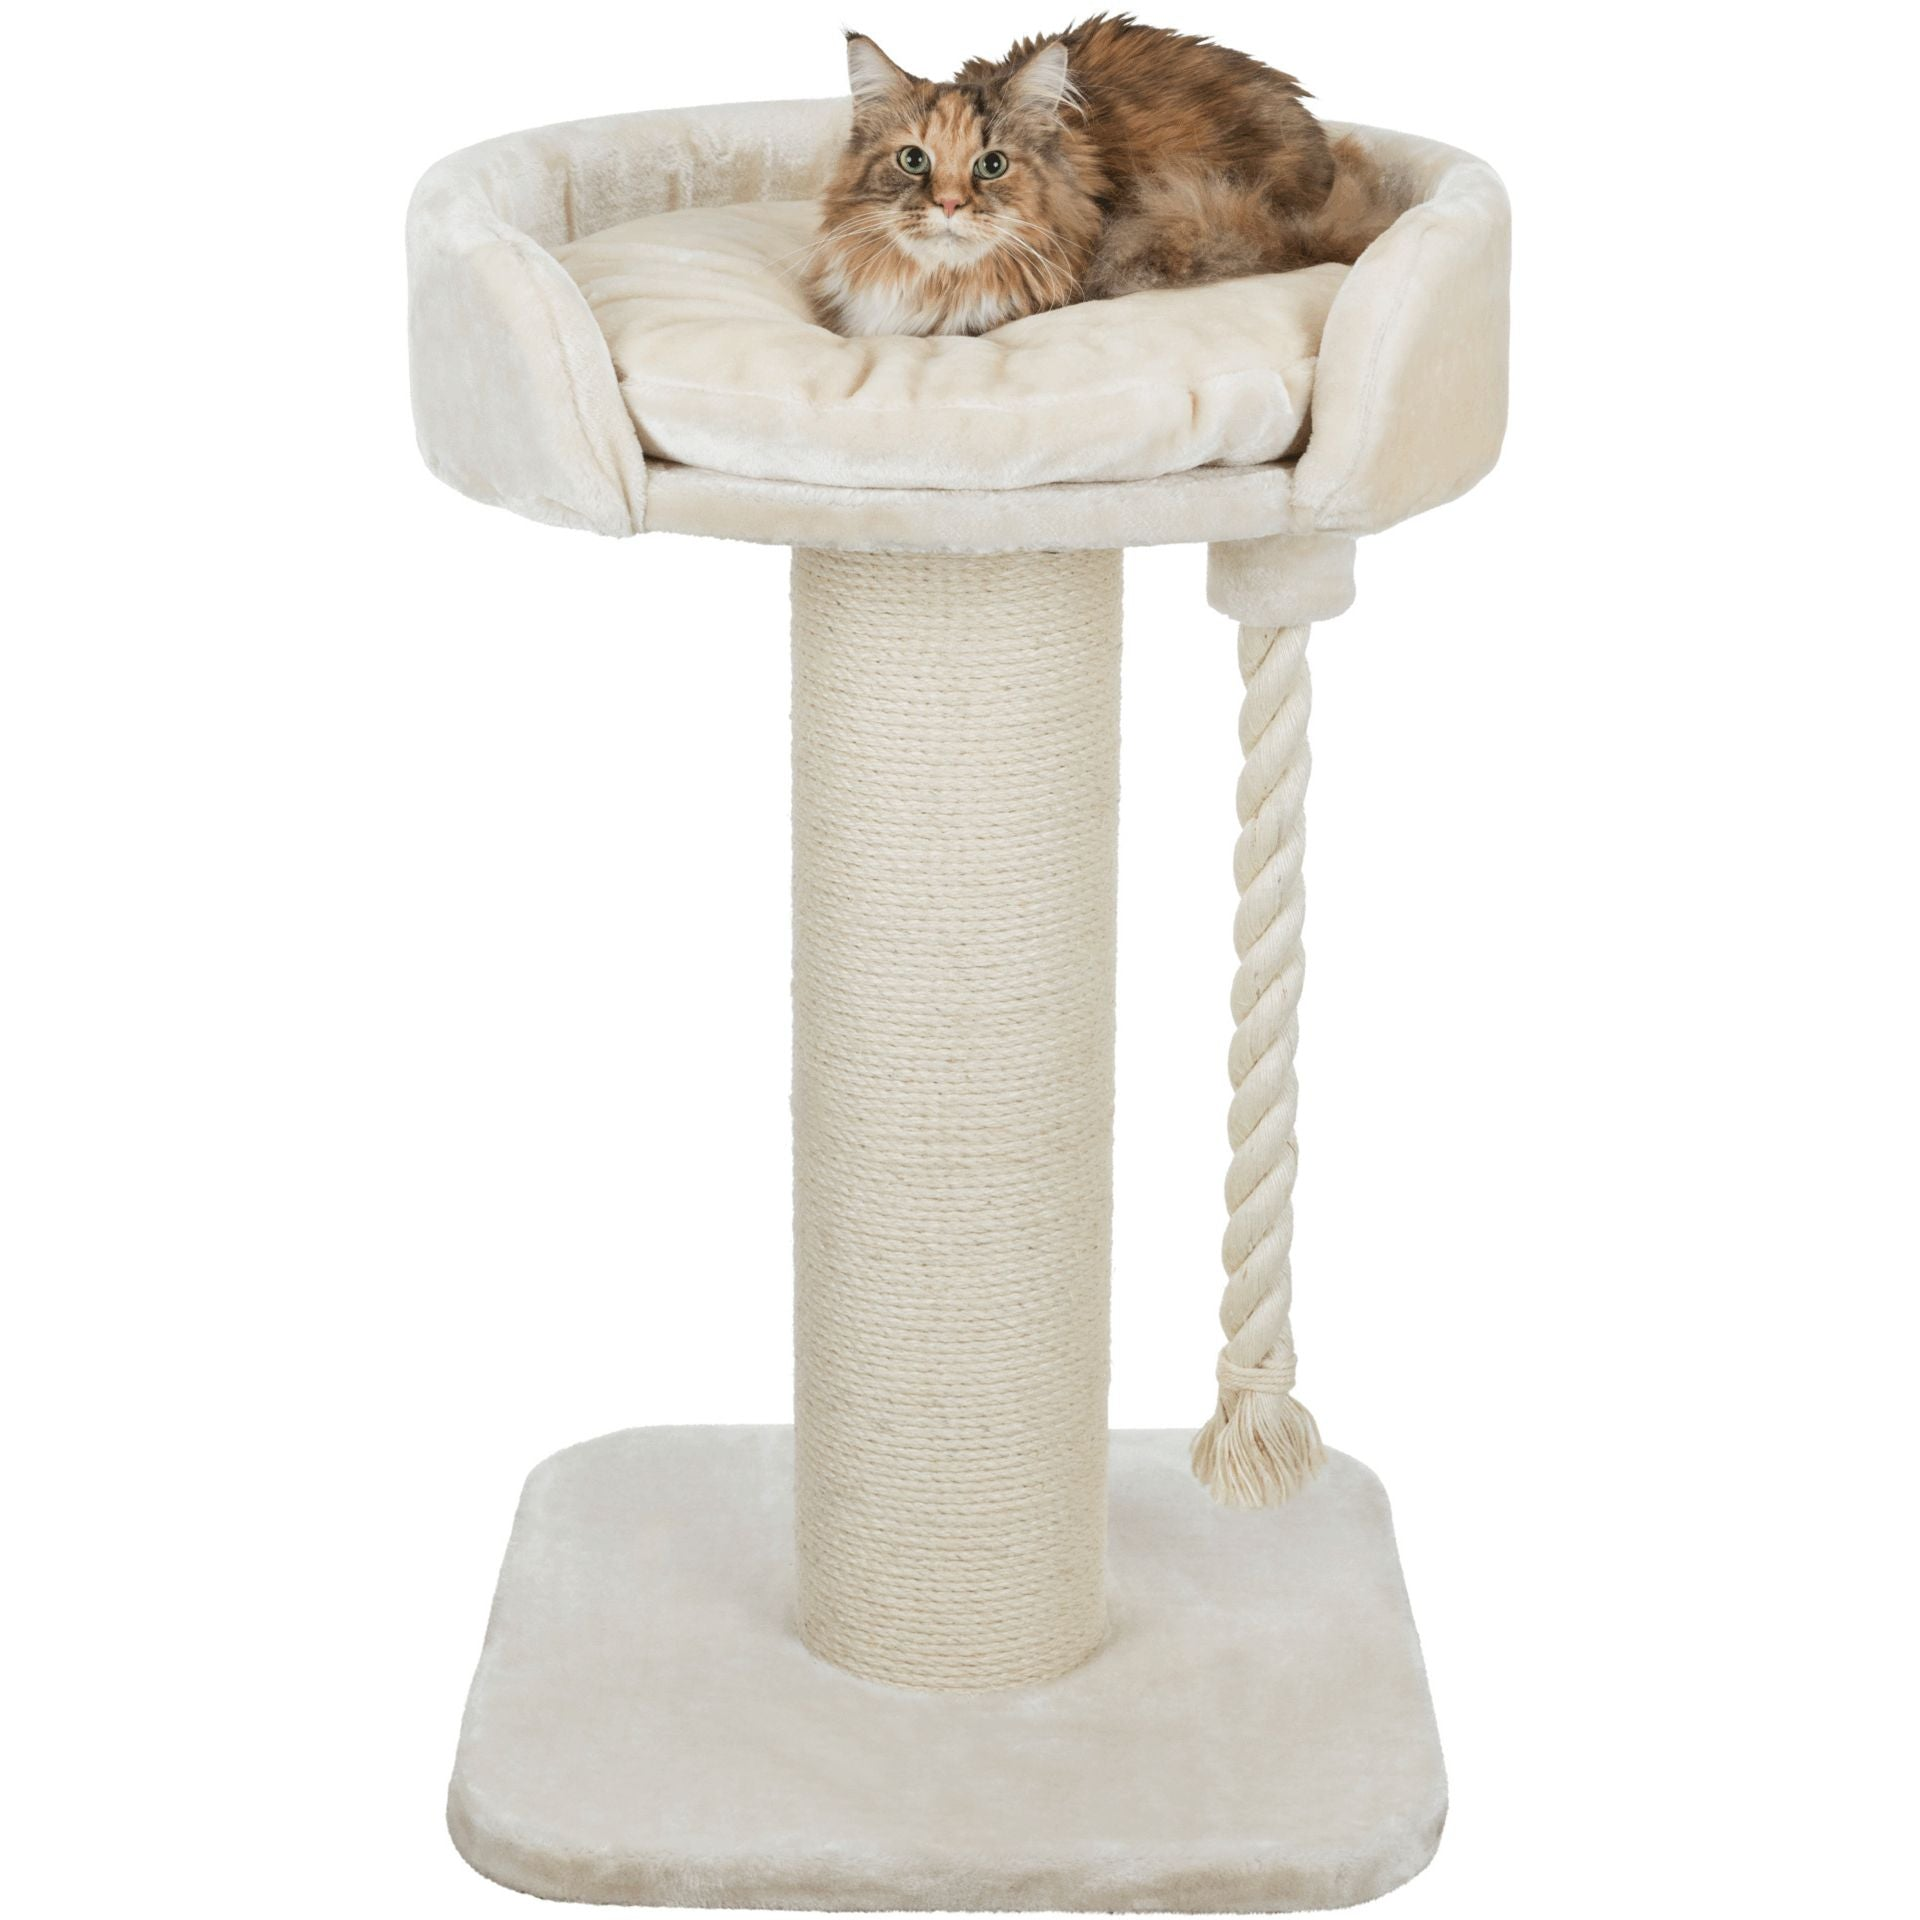 Klara XXL Scratcher and Bed by Trixie for Large Cats